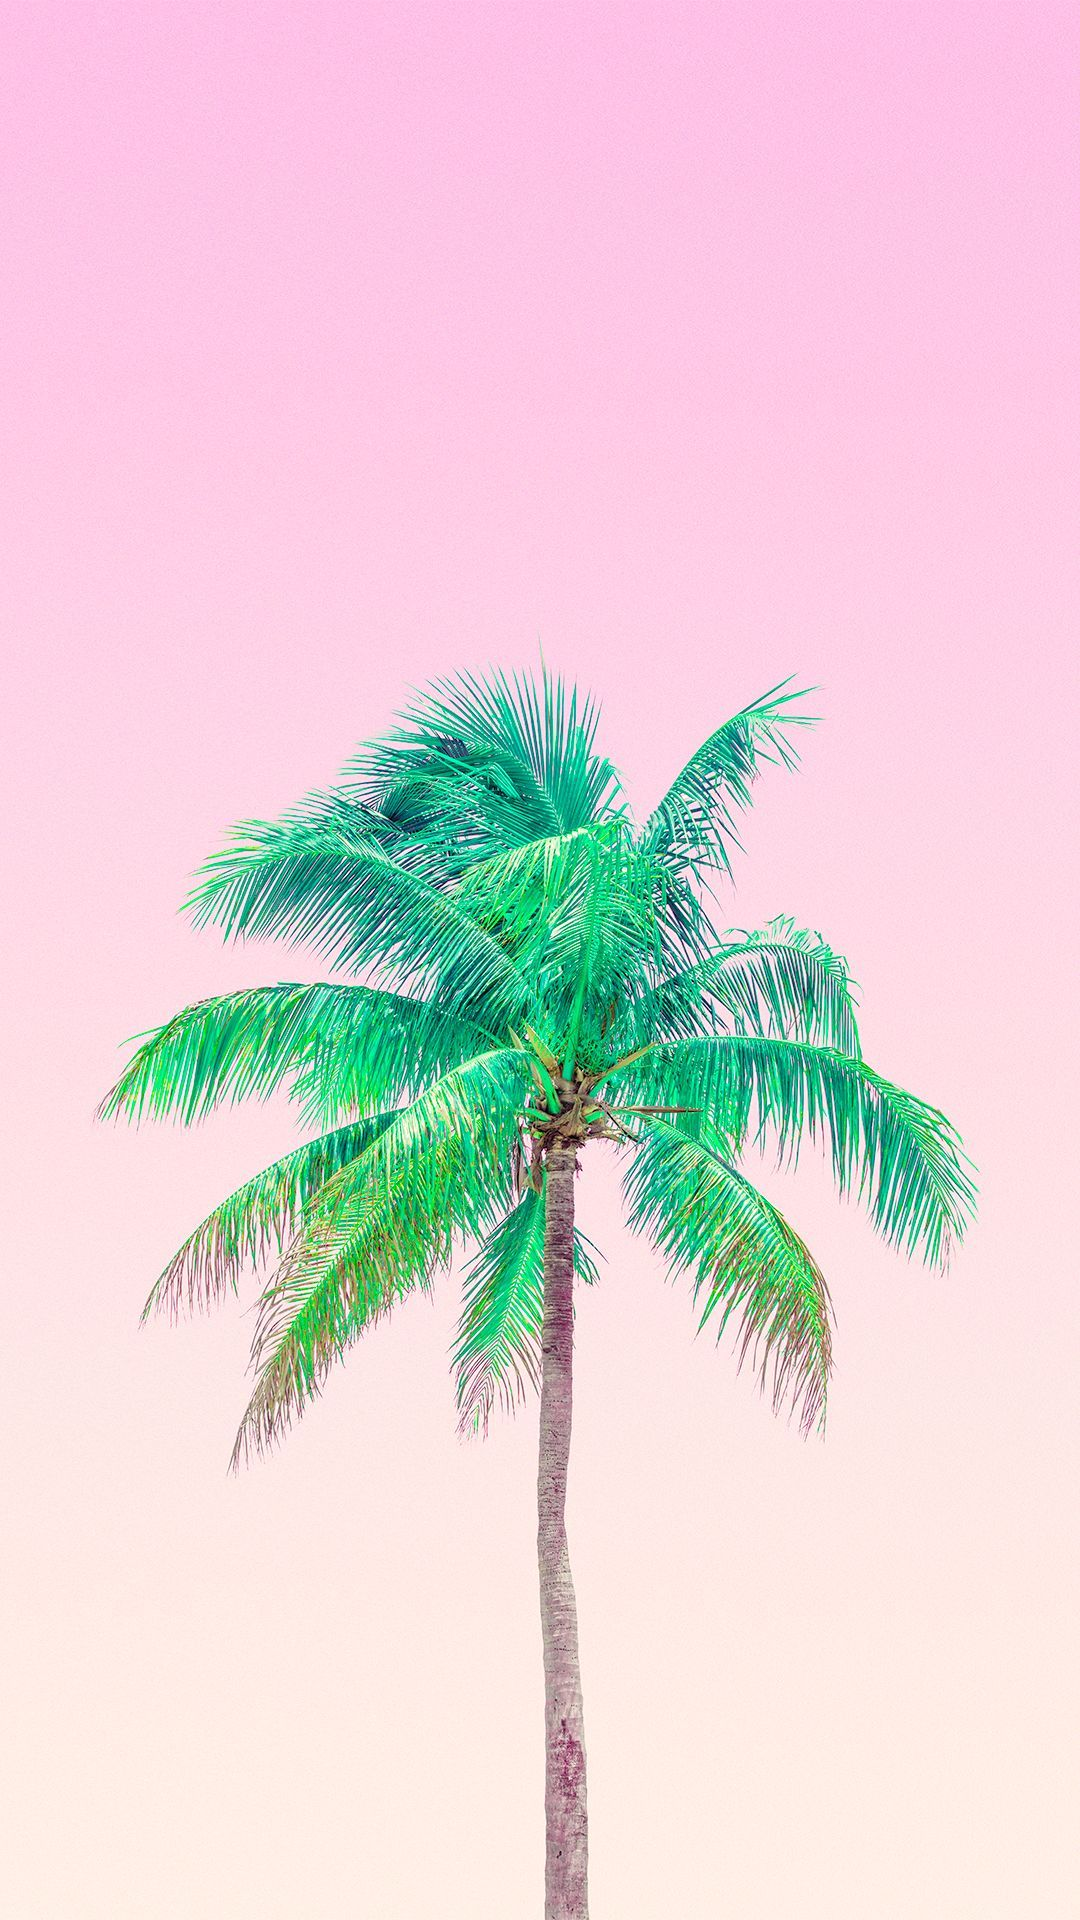 Aesthetic Palm Tree Wallpaper Pink Allwallpaper Find the best aesthetic wallpapers on getwallpapers. aesthetic palm tree wallpaper pink